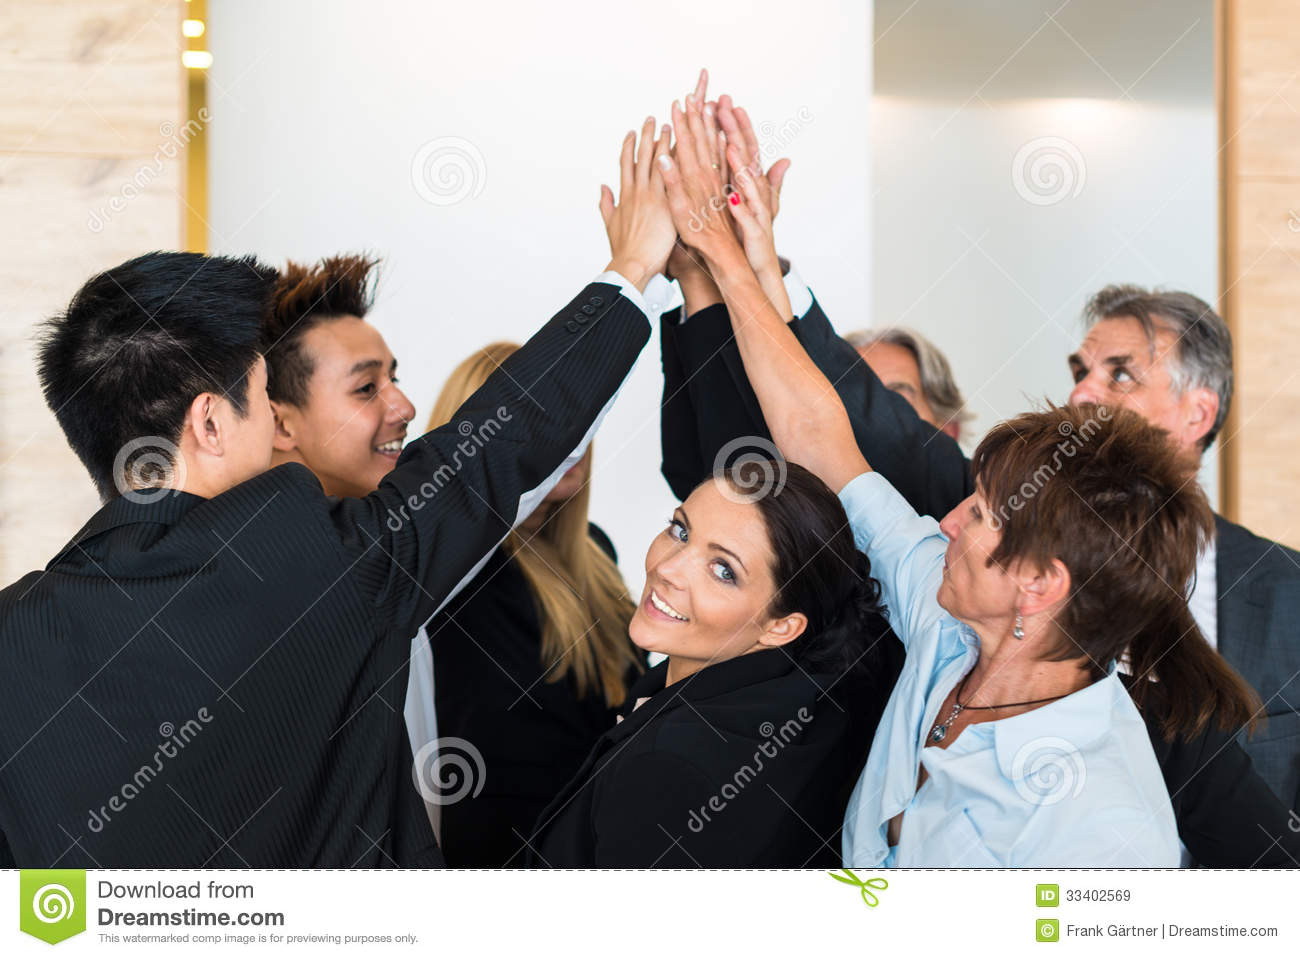 Teamwork - business people with joint hands in the